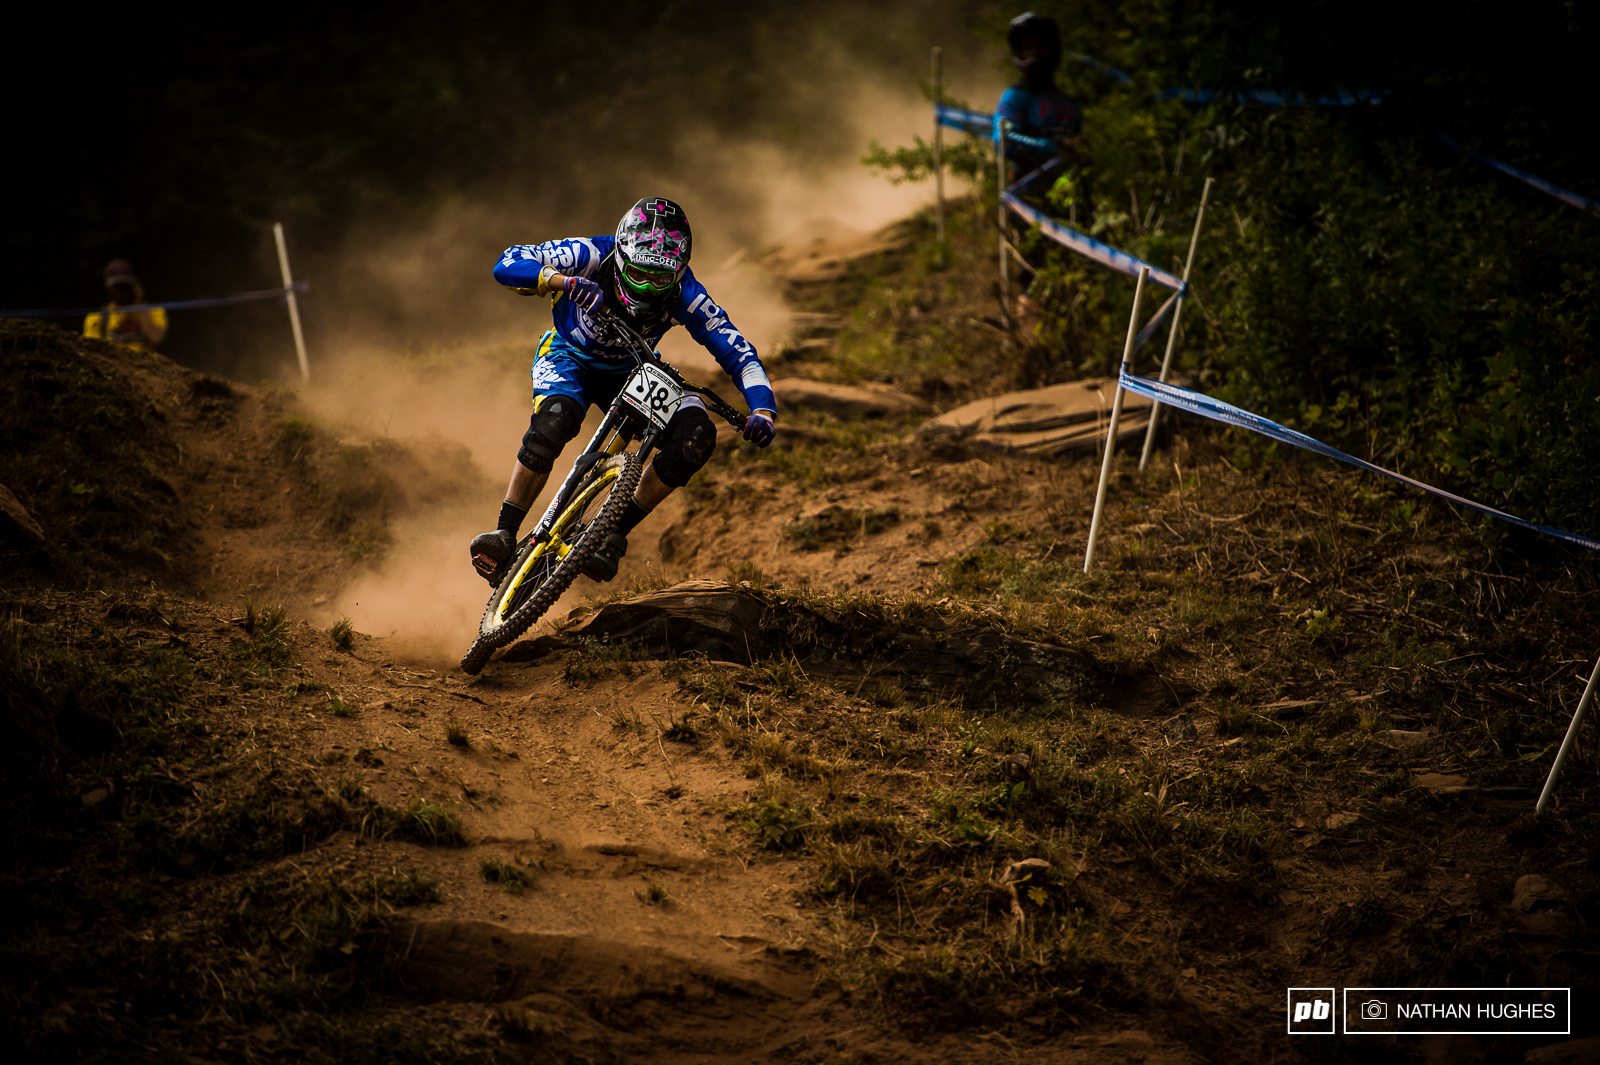 CRC had a cracker out here last season with the whole crew finishing in the top 10. Jones goes hunting for the repeat...